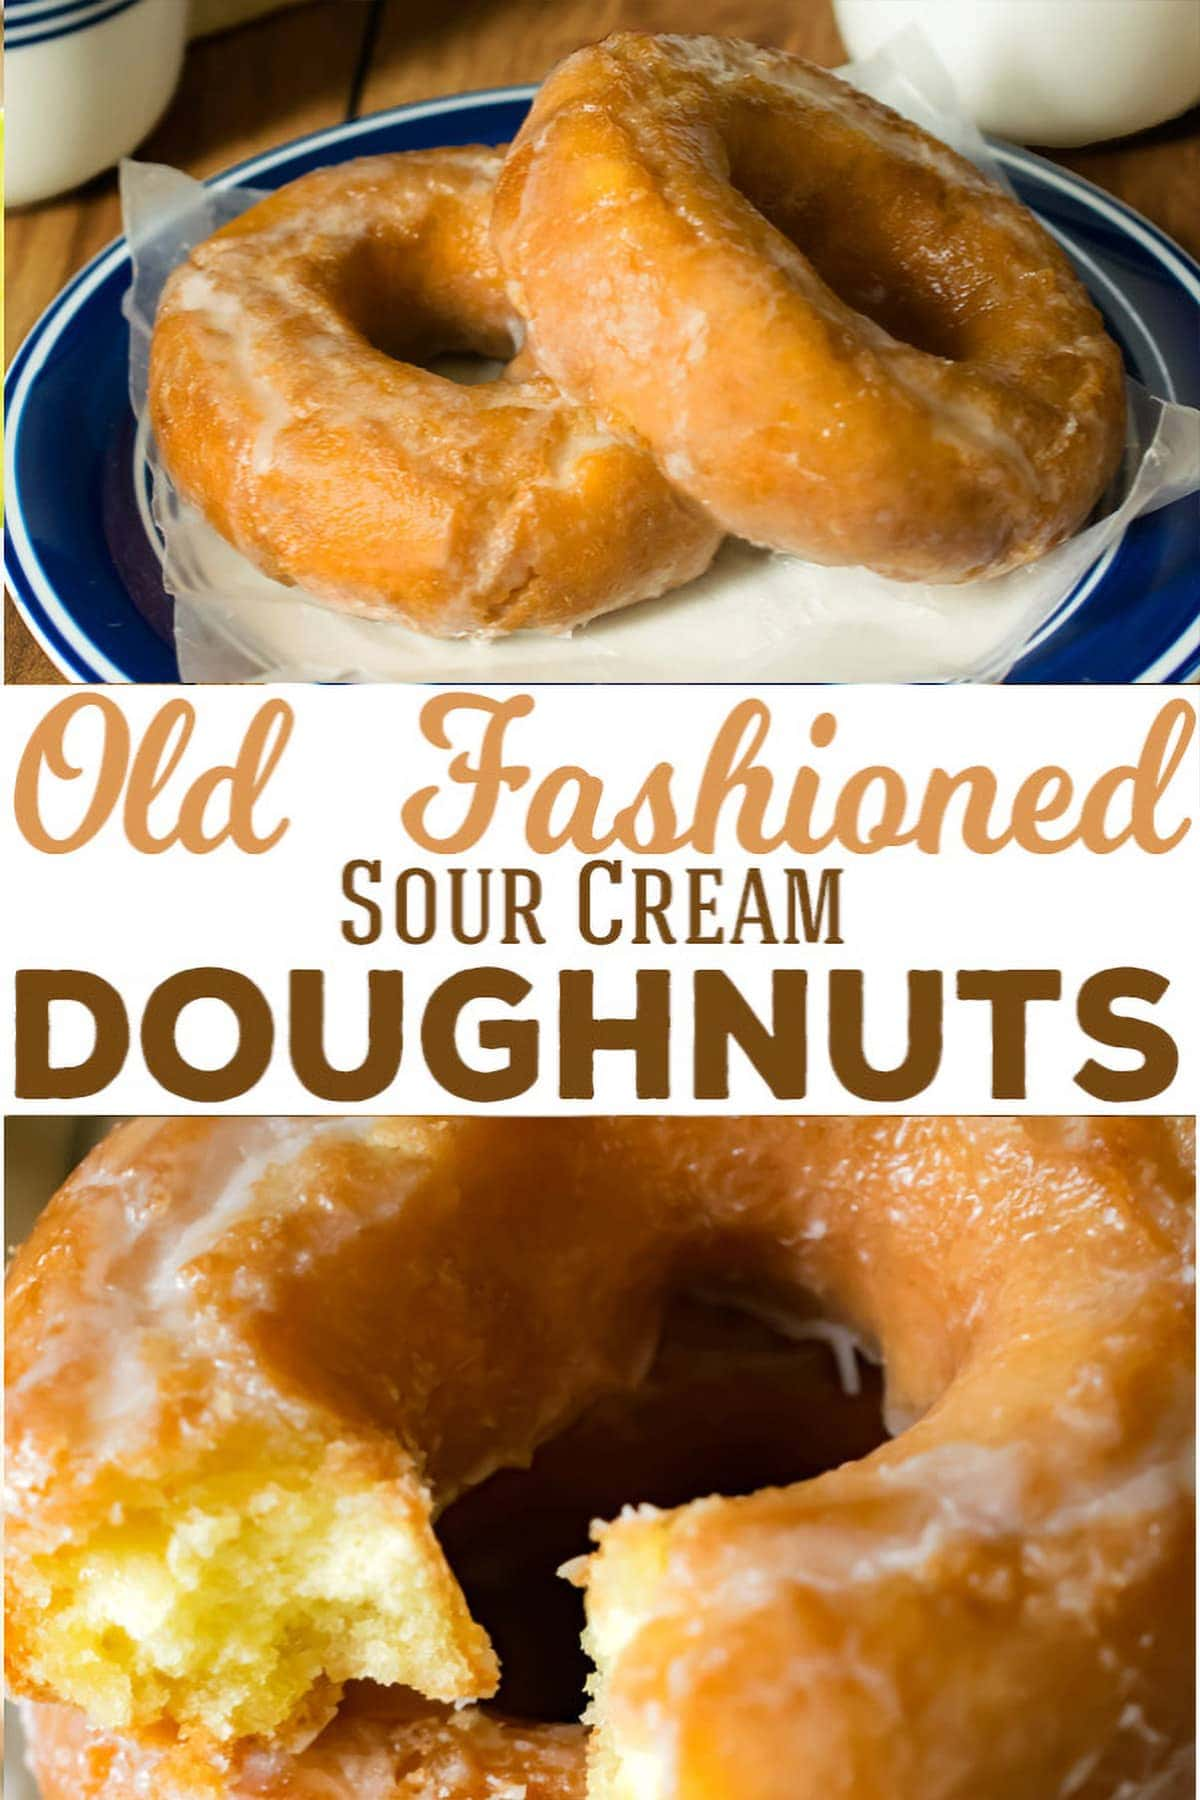 Delicately glazed old fashioned sour cream cake doughnuts on white and blue plate.